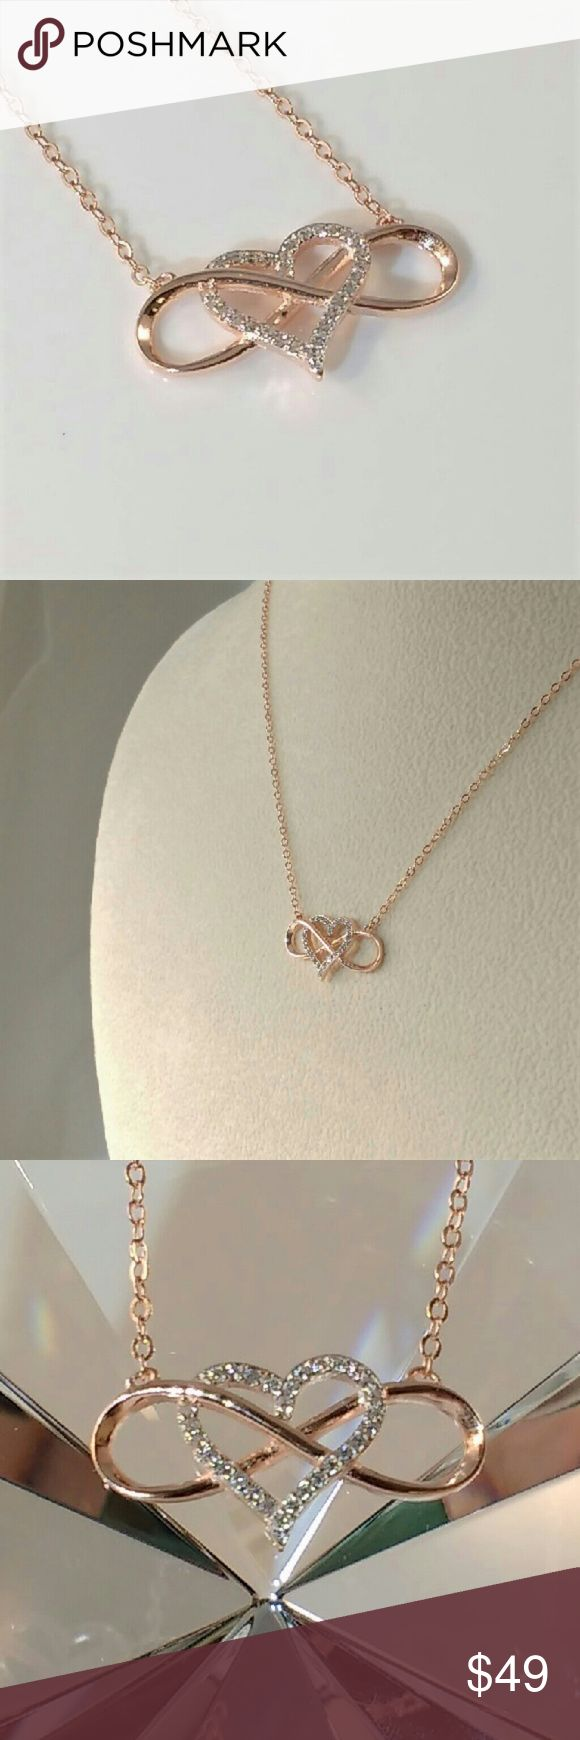 "NEW LISTING ❤ Infinity Heart Pendant Neckace This exquisite simulated diamond (CZ) pendant necklace in 14k rose gold over sterling silver is 16"" long, adjustable to 18"". There are 29 round cut simulated diamond (CZ) accents. The infinity symbol is 7/8"" wide and the heart is 1/2"" tall. The infinity symbol represents the timeliness of love. Rose gold is trending now! New.  Measurements and weights are approximate. Photos may be enlarged to show detail. Jewelry Necklaces"